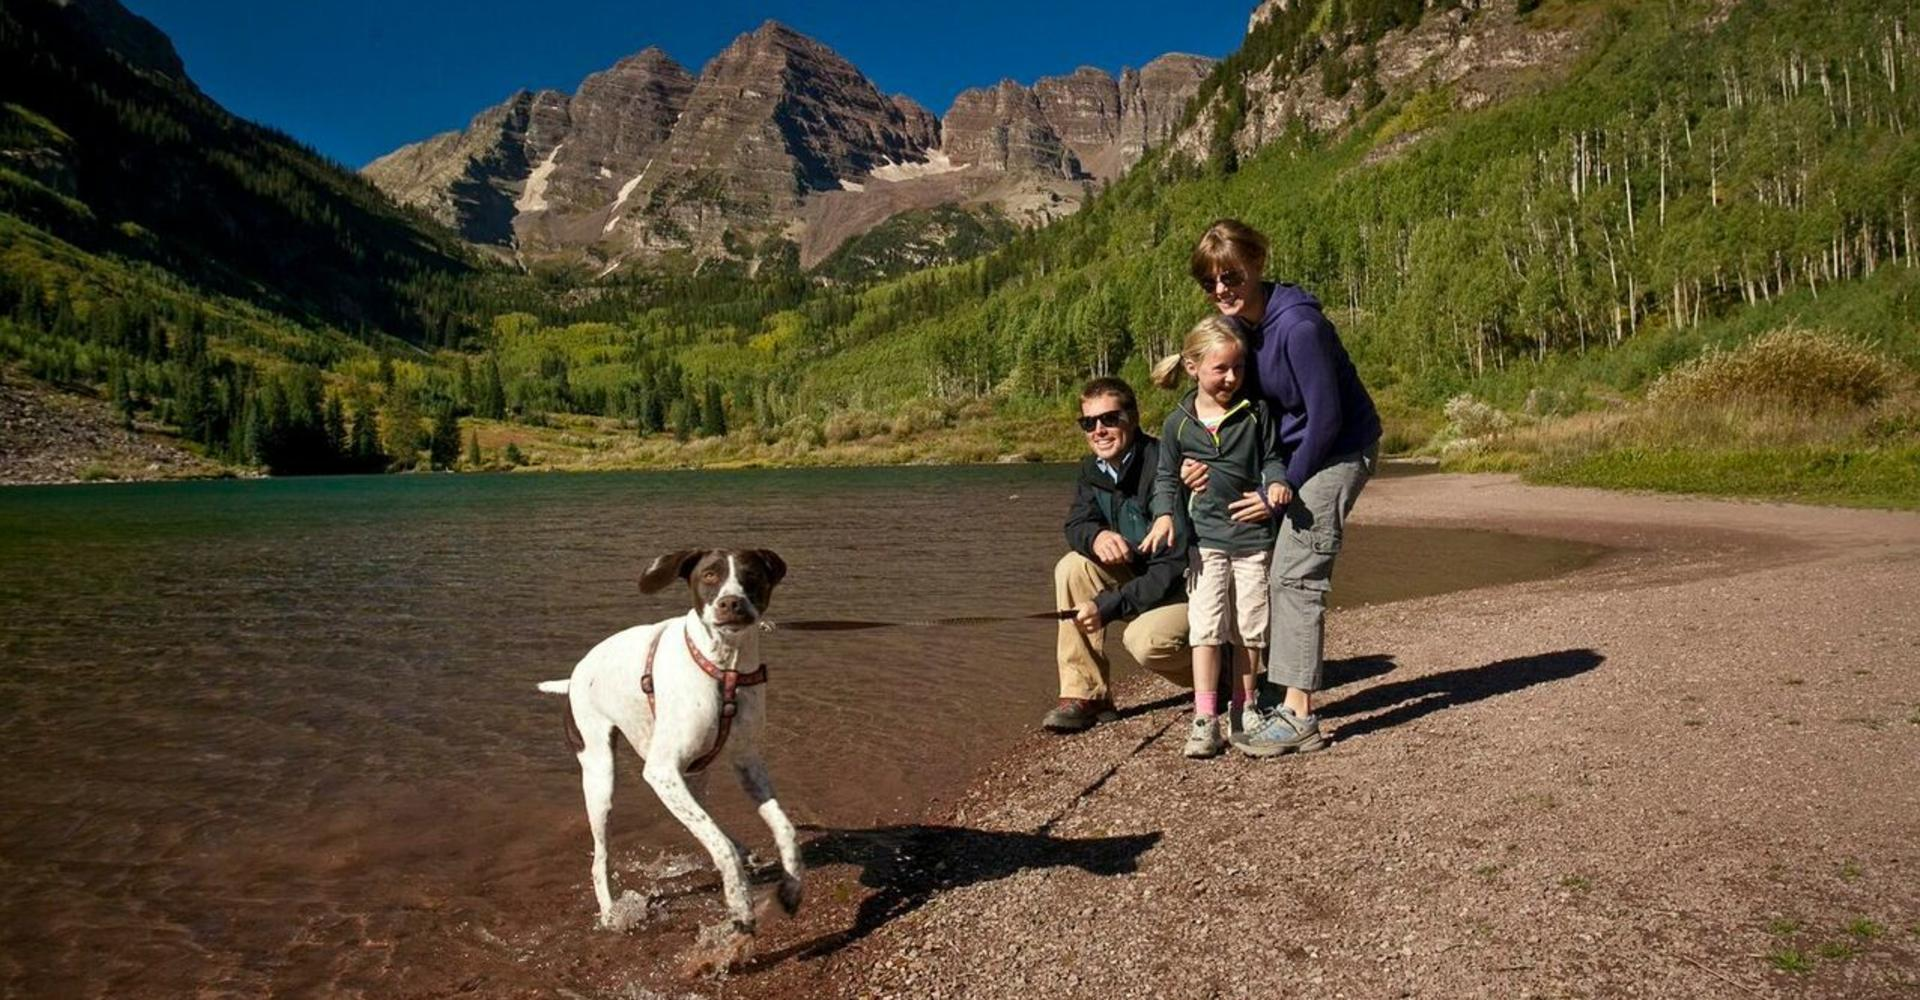 Family Friendly Aspen Aspen Co Chamber